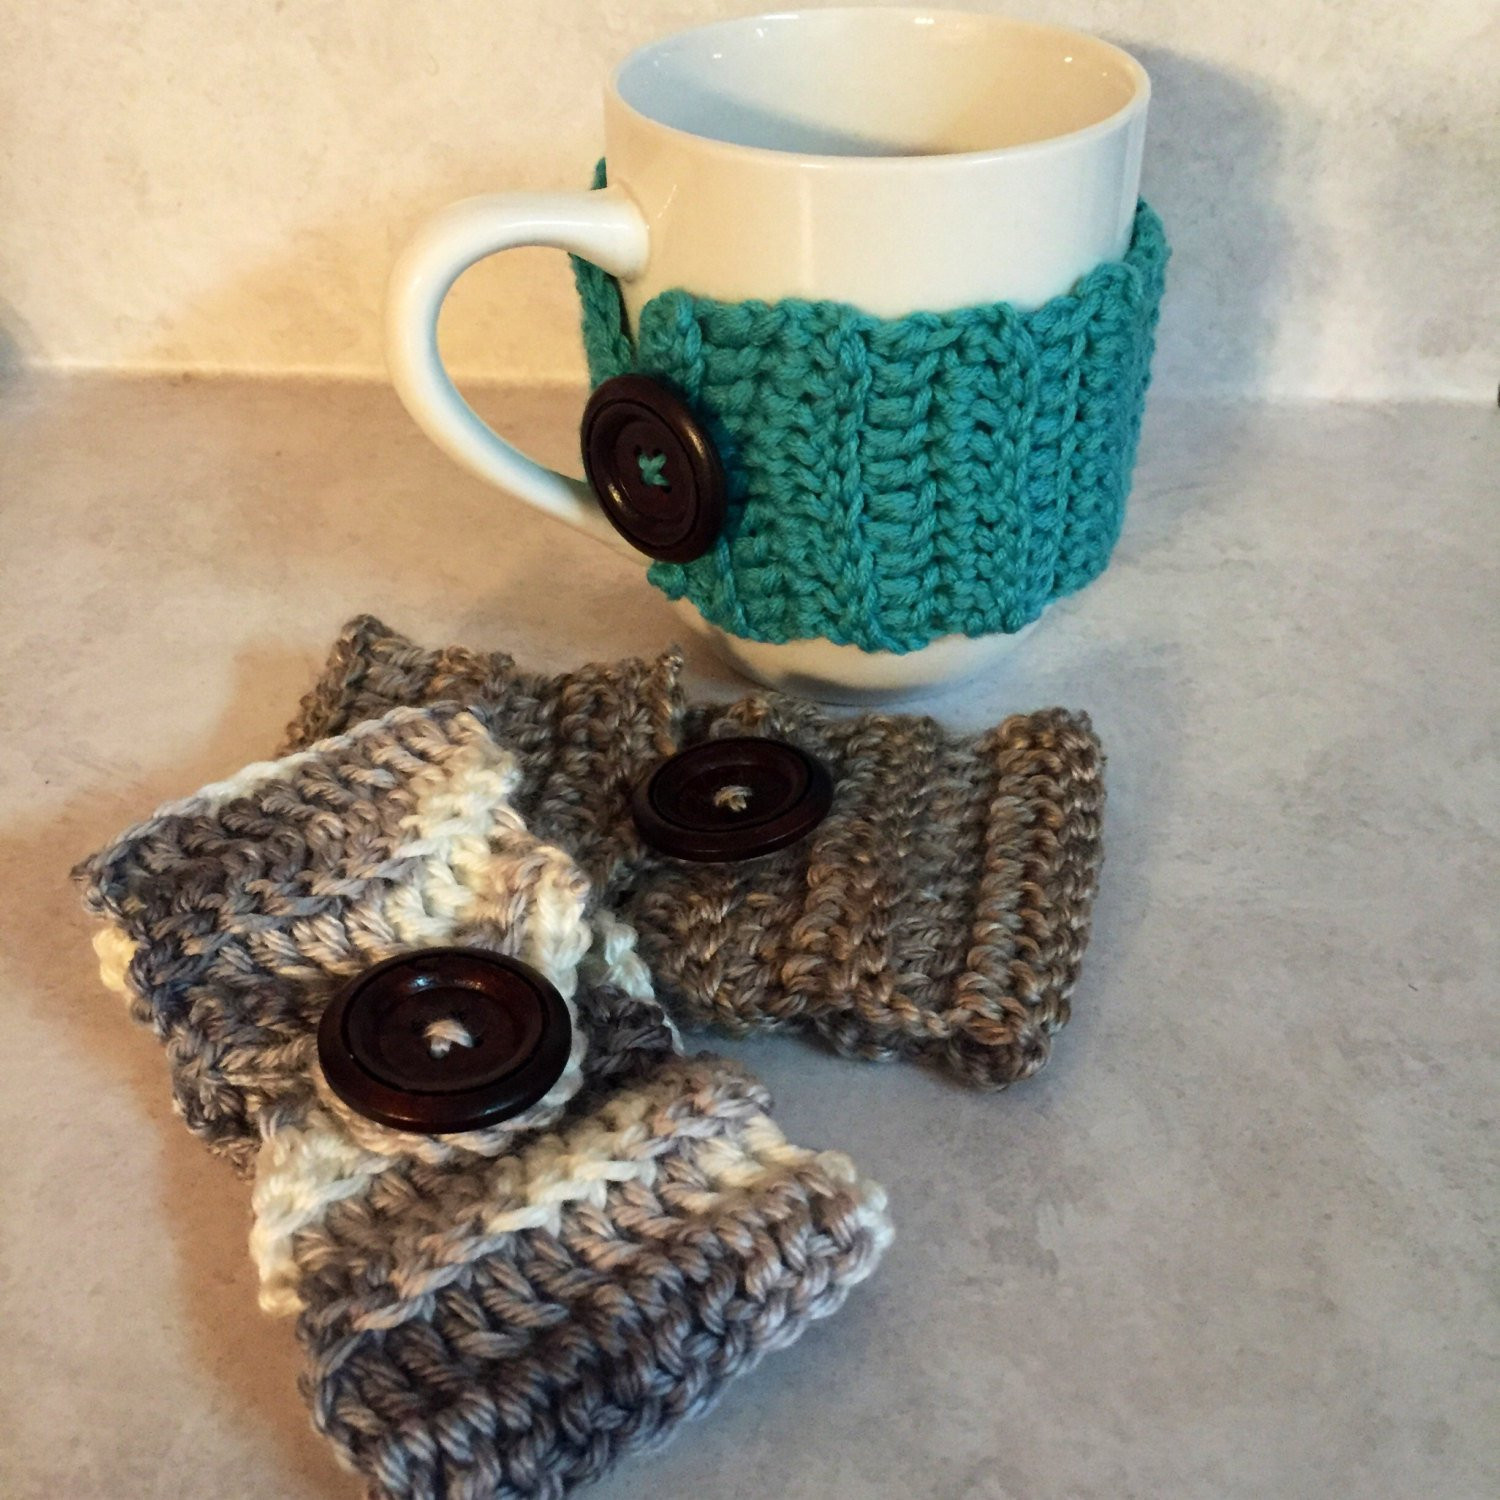 Crochet Coffee Cup Cozy New Crochet Tea Cozy Coffee Cup Sleeve Coffee Sleeve Mug Cozy Of Crochet Coffee Cup Cozy Elegant Basketweave Cup Cozy Crochet Pattern with